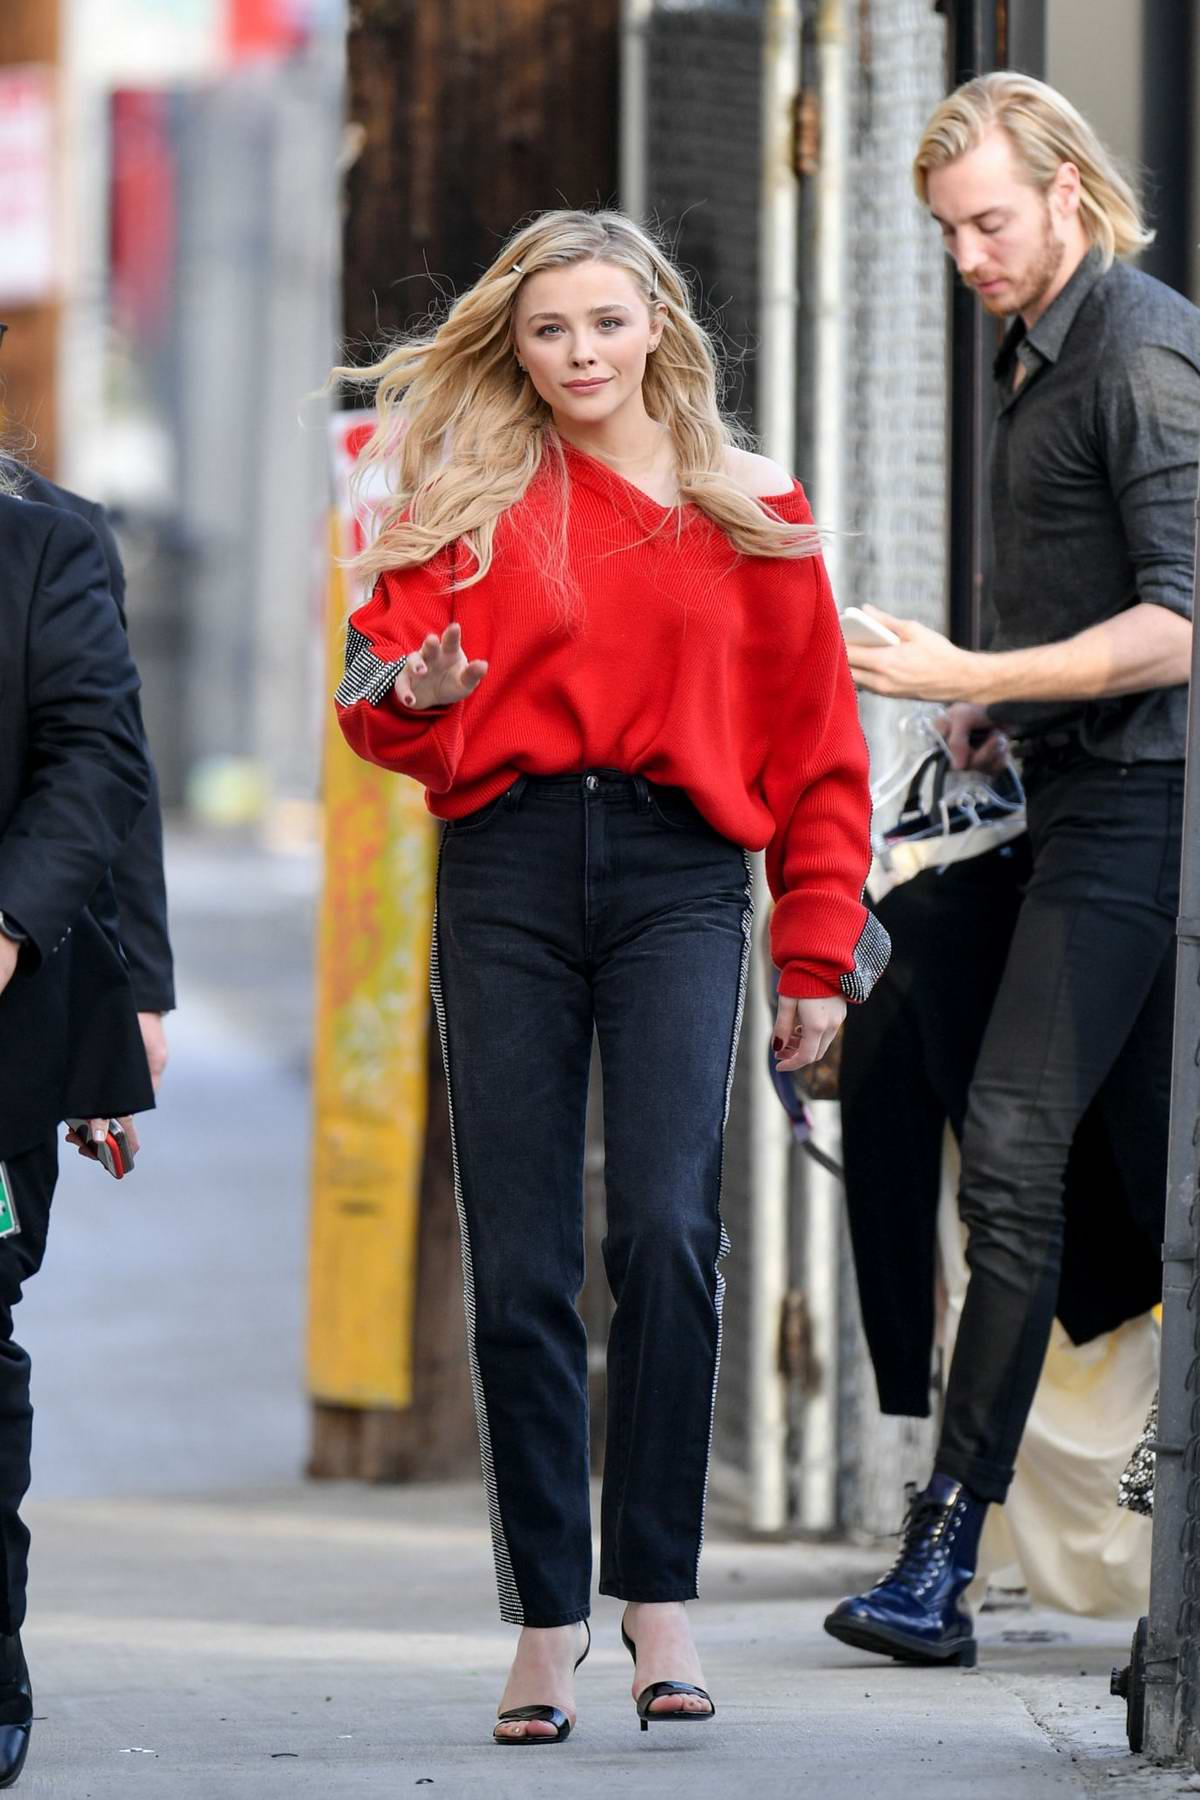 Chloe Grace Moretz stands out in a bright red sweater as she arrives for her appearance on Jimmy Kimmel Live! in Los Angeles